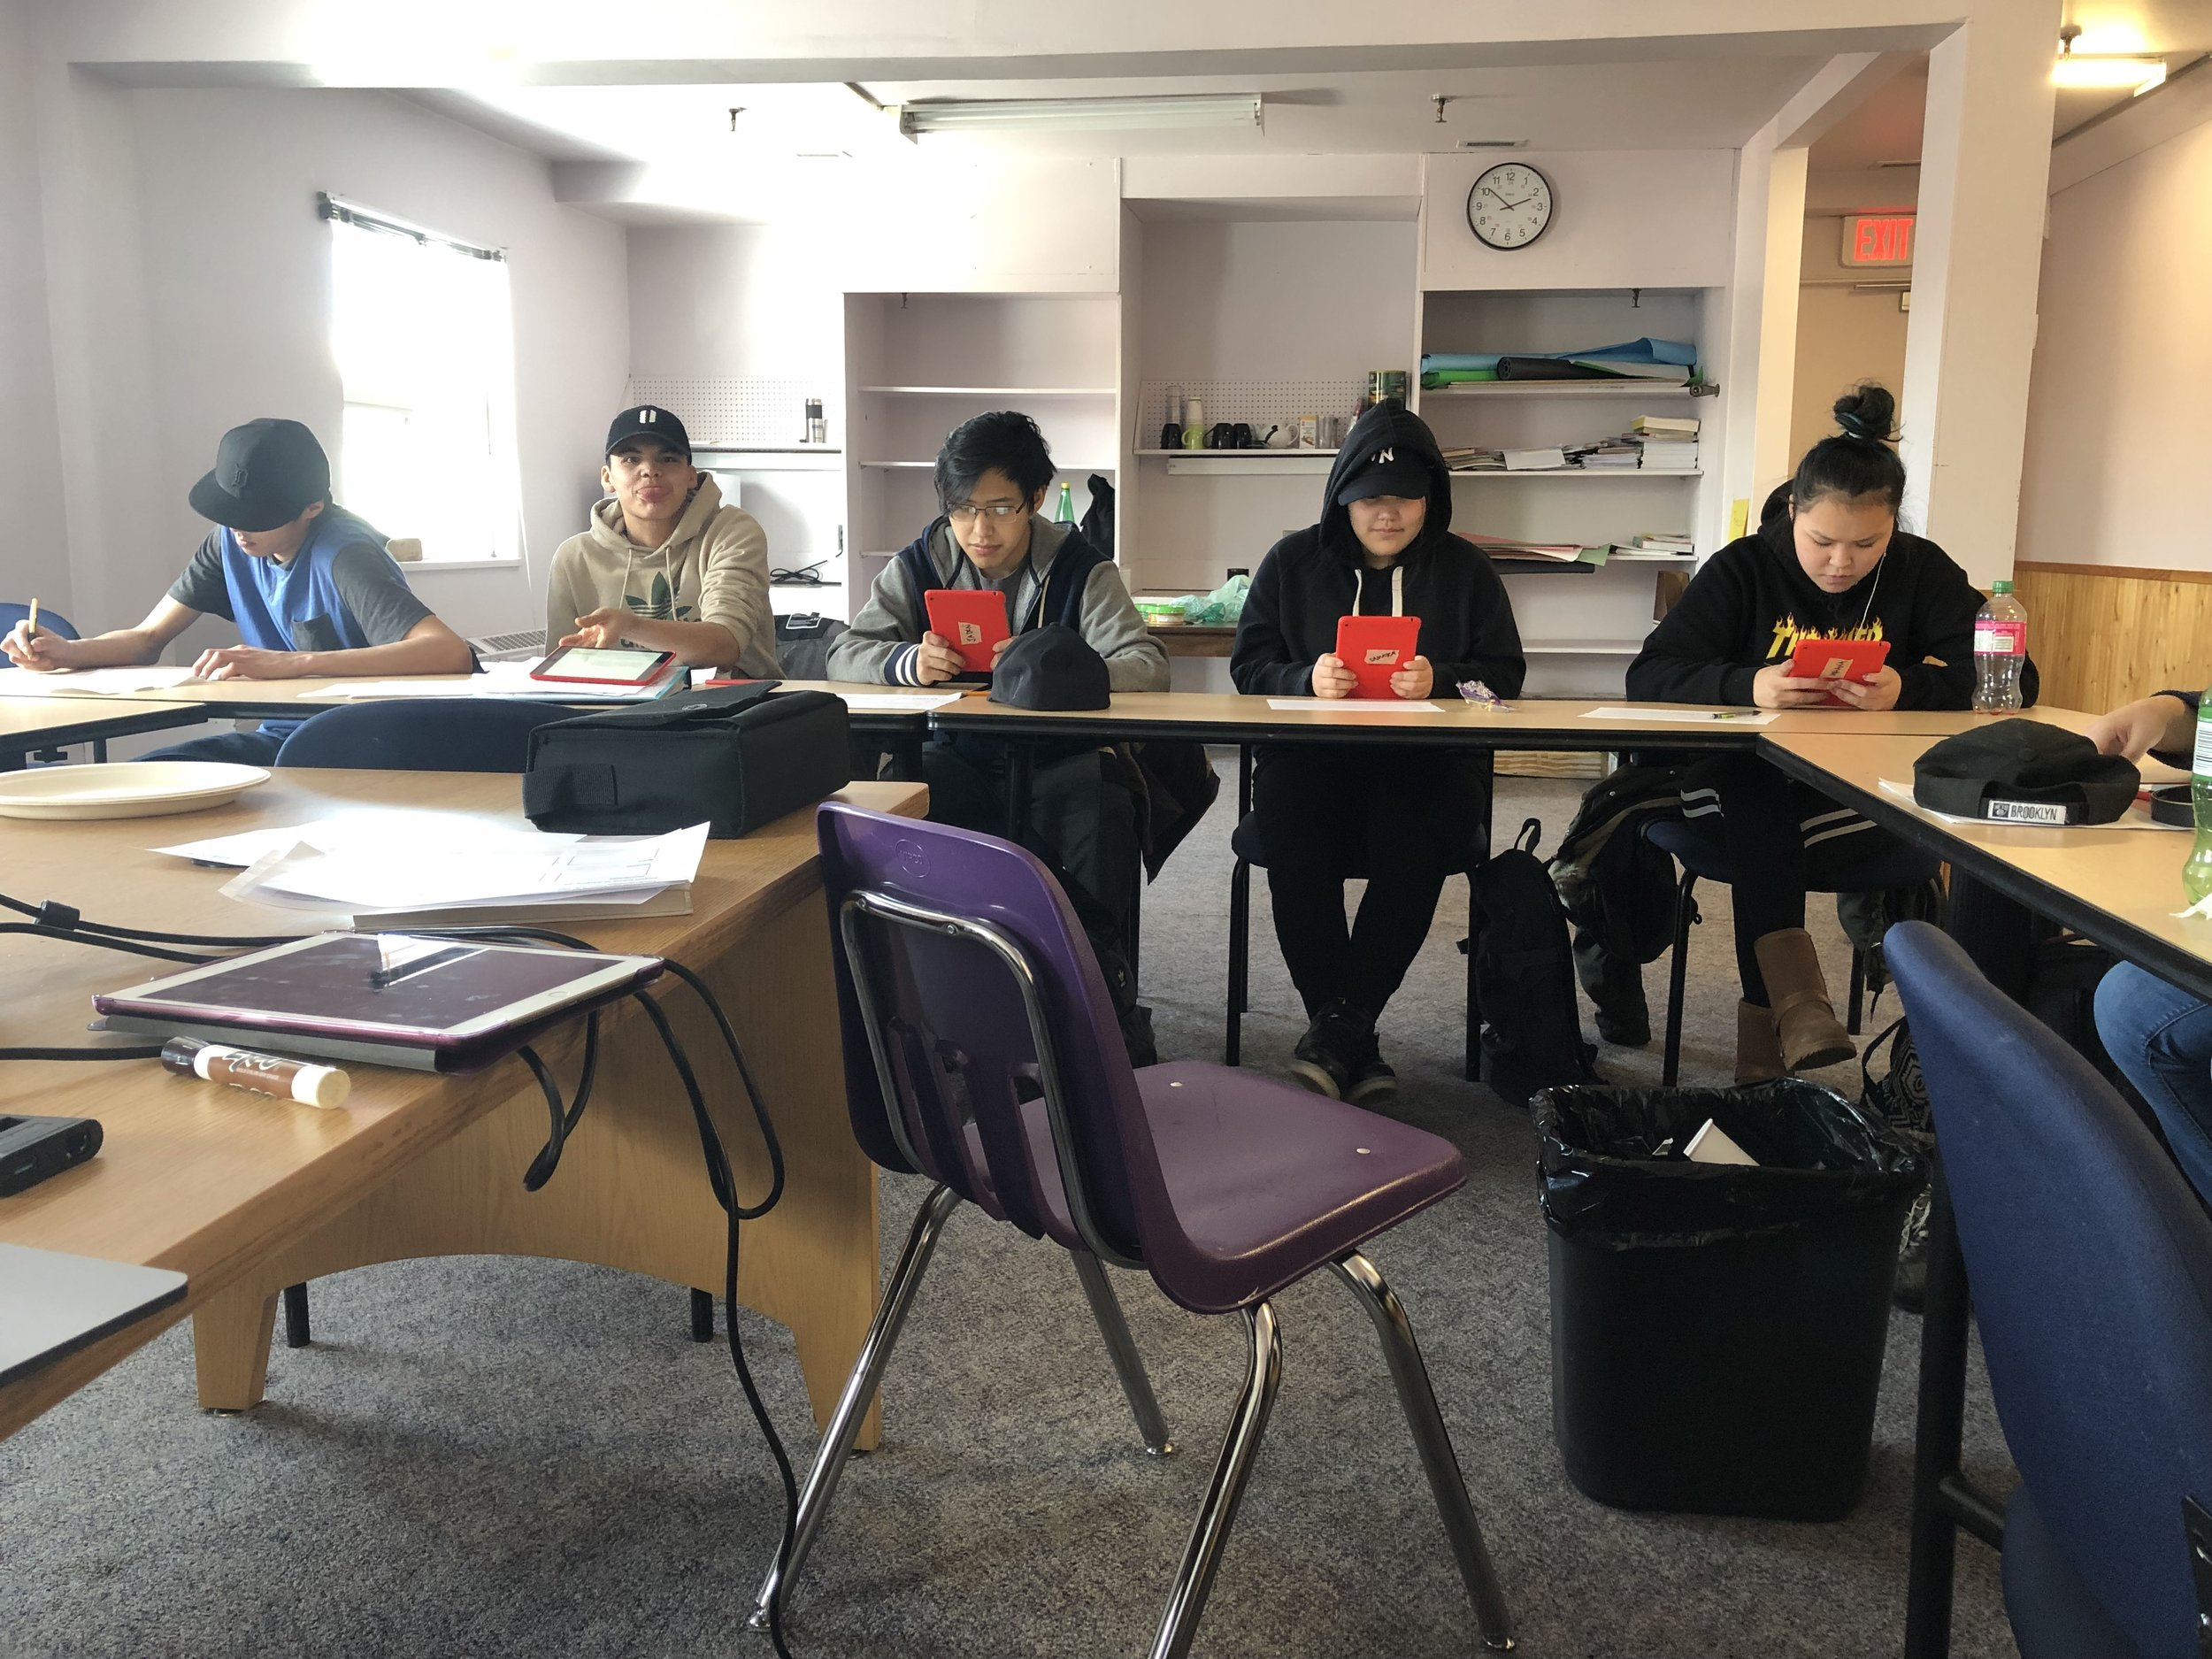 Students at work on their iPads